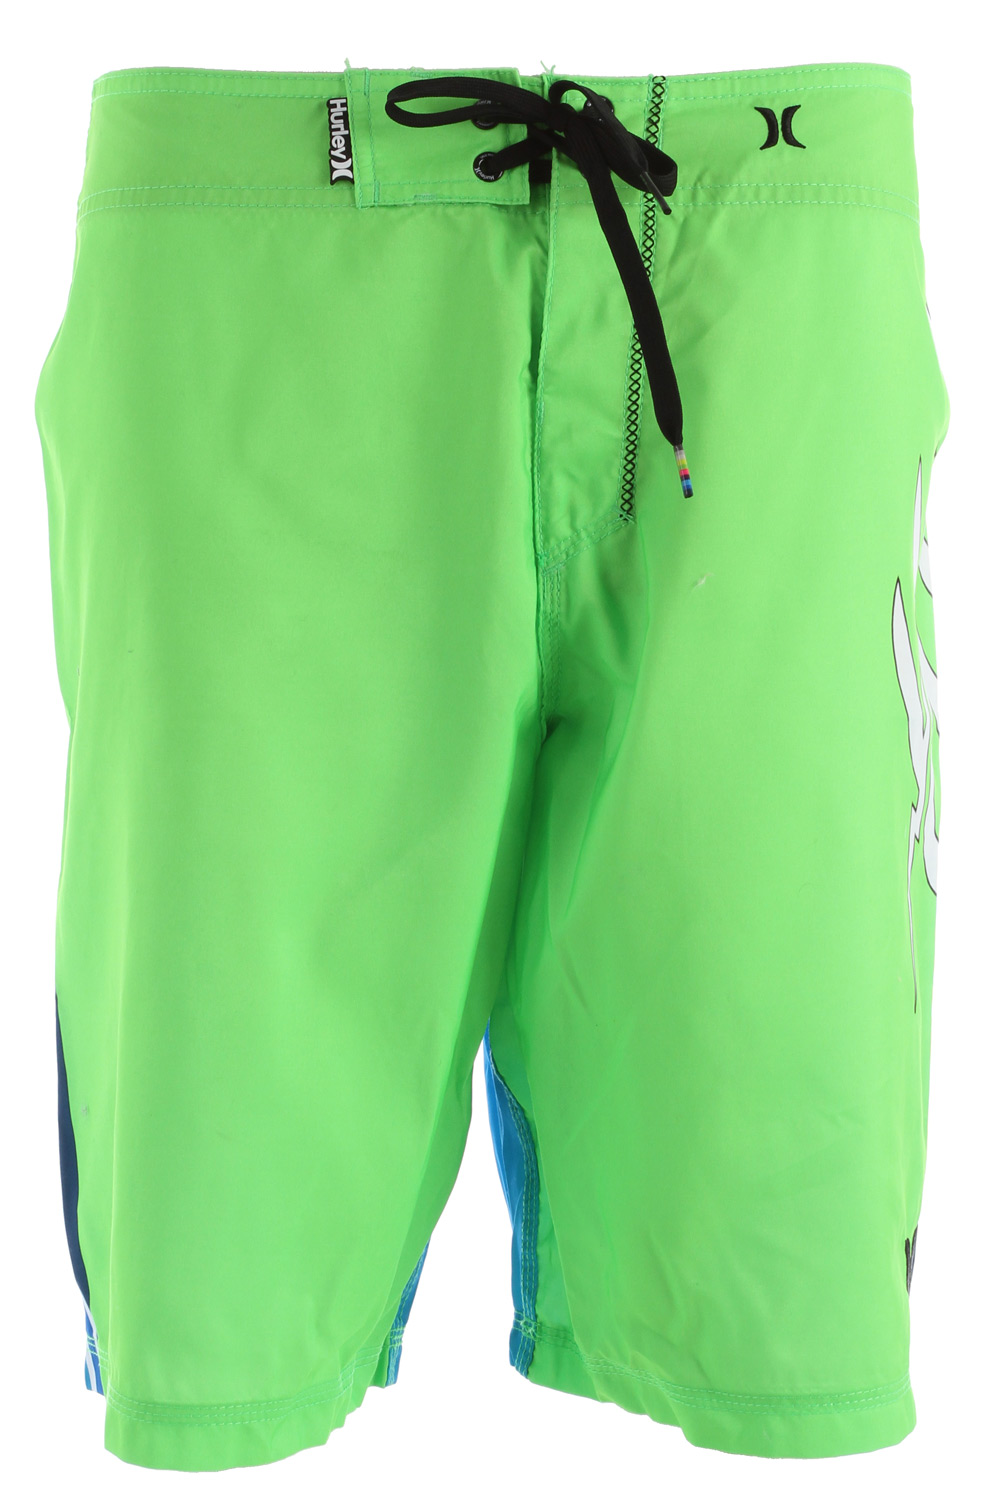 "Surf Key Features of the Hurley Bolt Boardshorts: 22"" Outseam Recycled Supersuede Patented EZ fly closure, embroidered and printed branding. - $32.95"